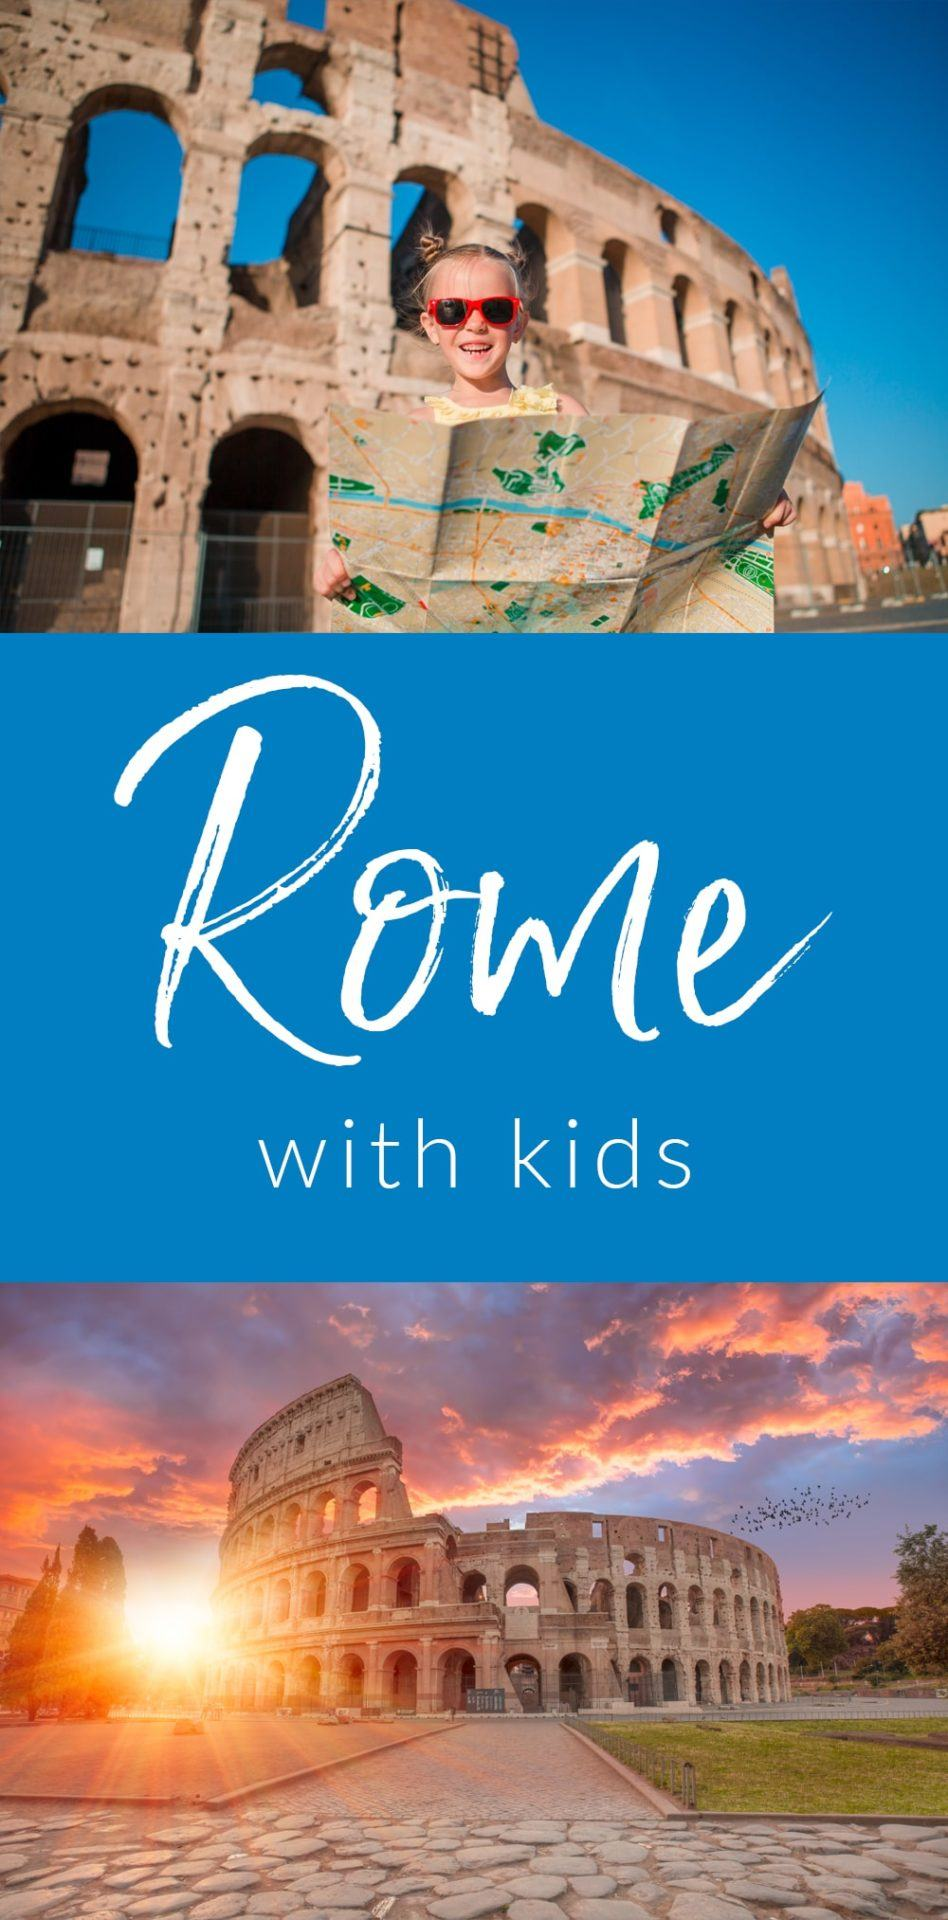 The ancient city of Rome has so much to offer for kids. Education, good food, and beautiful artwork around every corner. Taking kids to Rome can be amazing. Just follow this Guide to Rome with kids. #travel #rome #wanderlust #vacation #italy